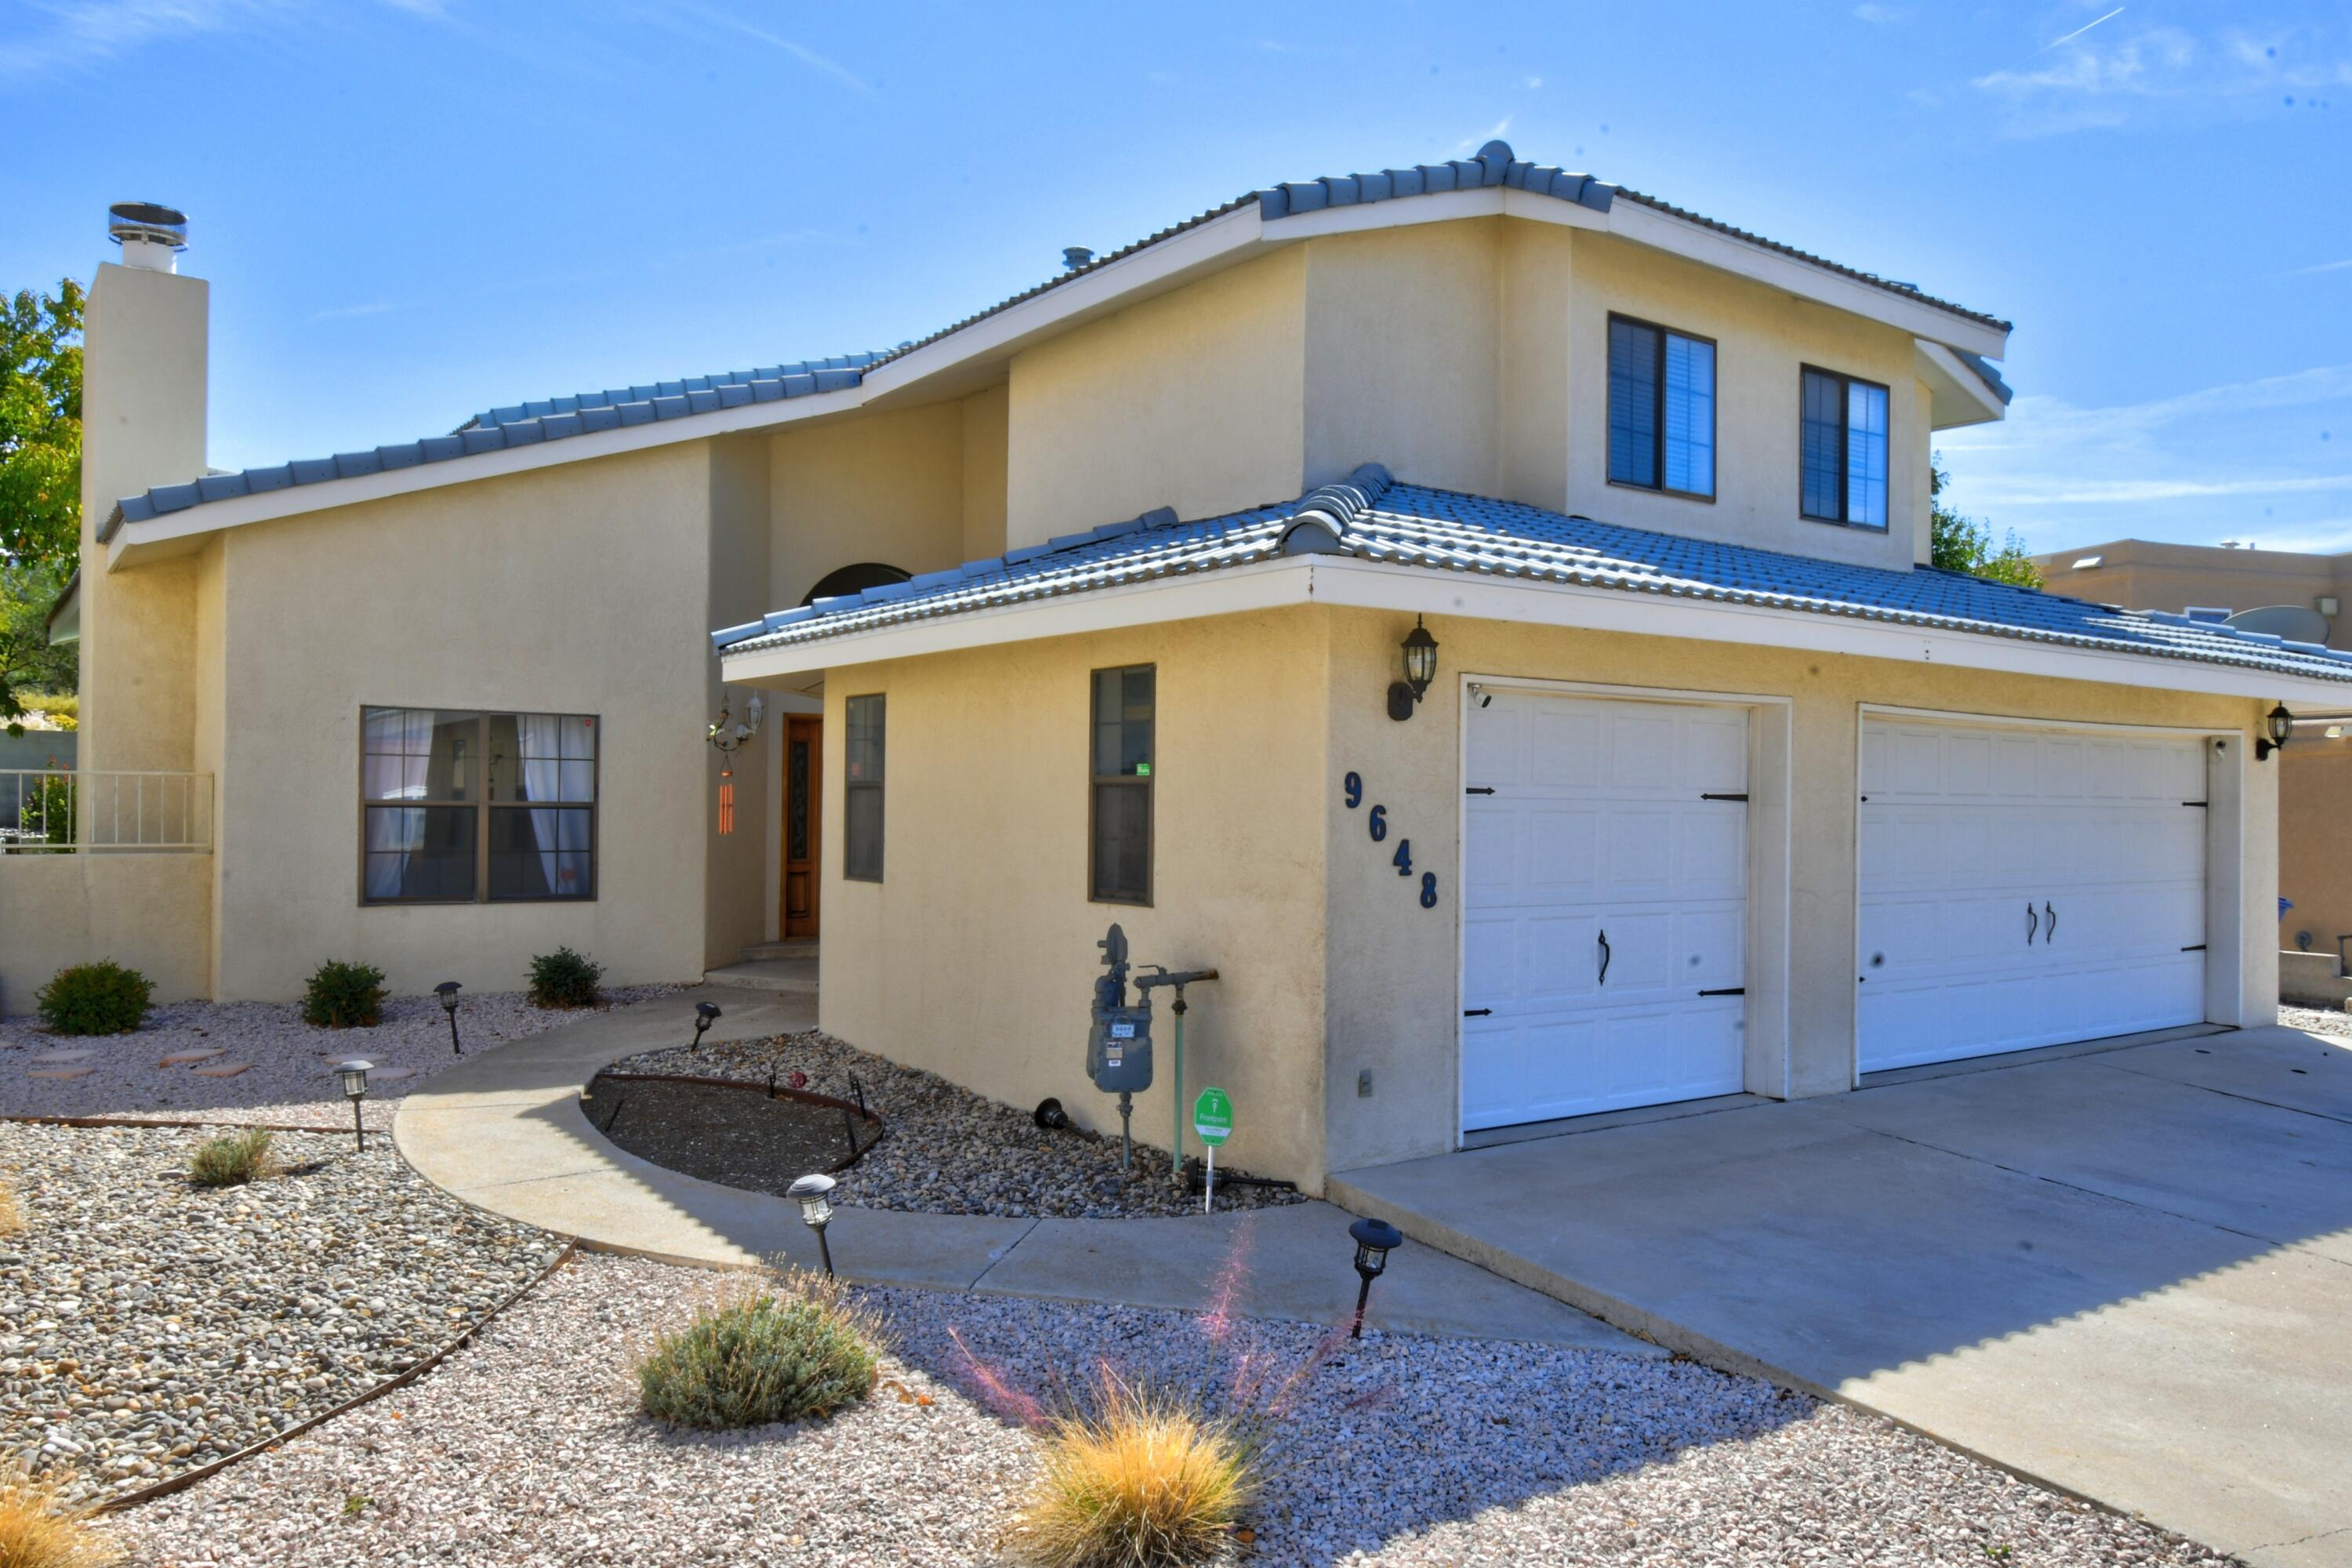 This home includes Breath taking Mountain views that enhance this beautiful Heritage East home. This 4bd 2.75ba 3cg  is a must have, Including marble and granite throughout the kitchen, laundry room and bathrooms.  Backyard includes a delicious cherry i and a apple tree, heated pool, landscaped yard with sprinkler system, New roof in 2016, 3 fireplaces and many more amazing features Schedule your showings, this home will not last. $40,000 of upgraded windows to be installed included in price.